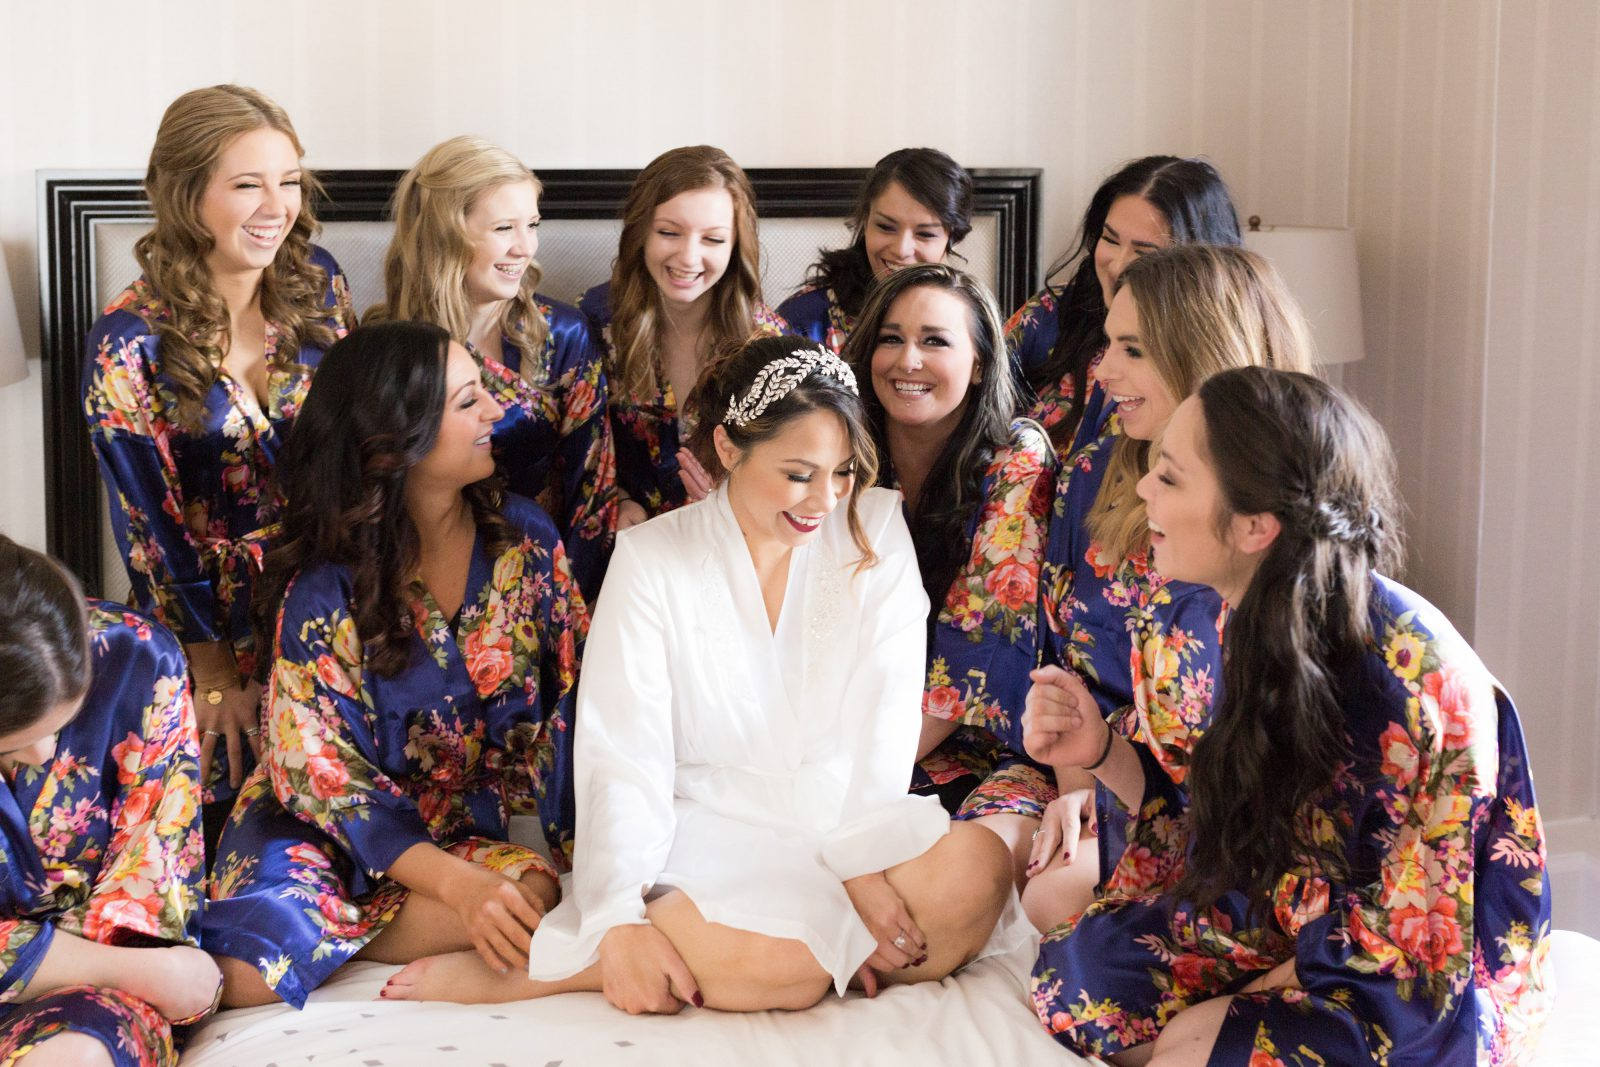 Bride and bridesmaids on bed in coordinating flower robes